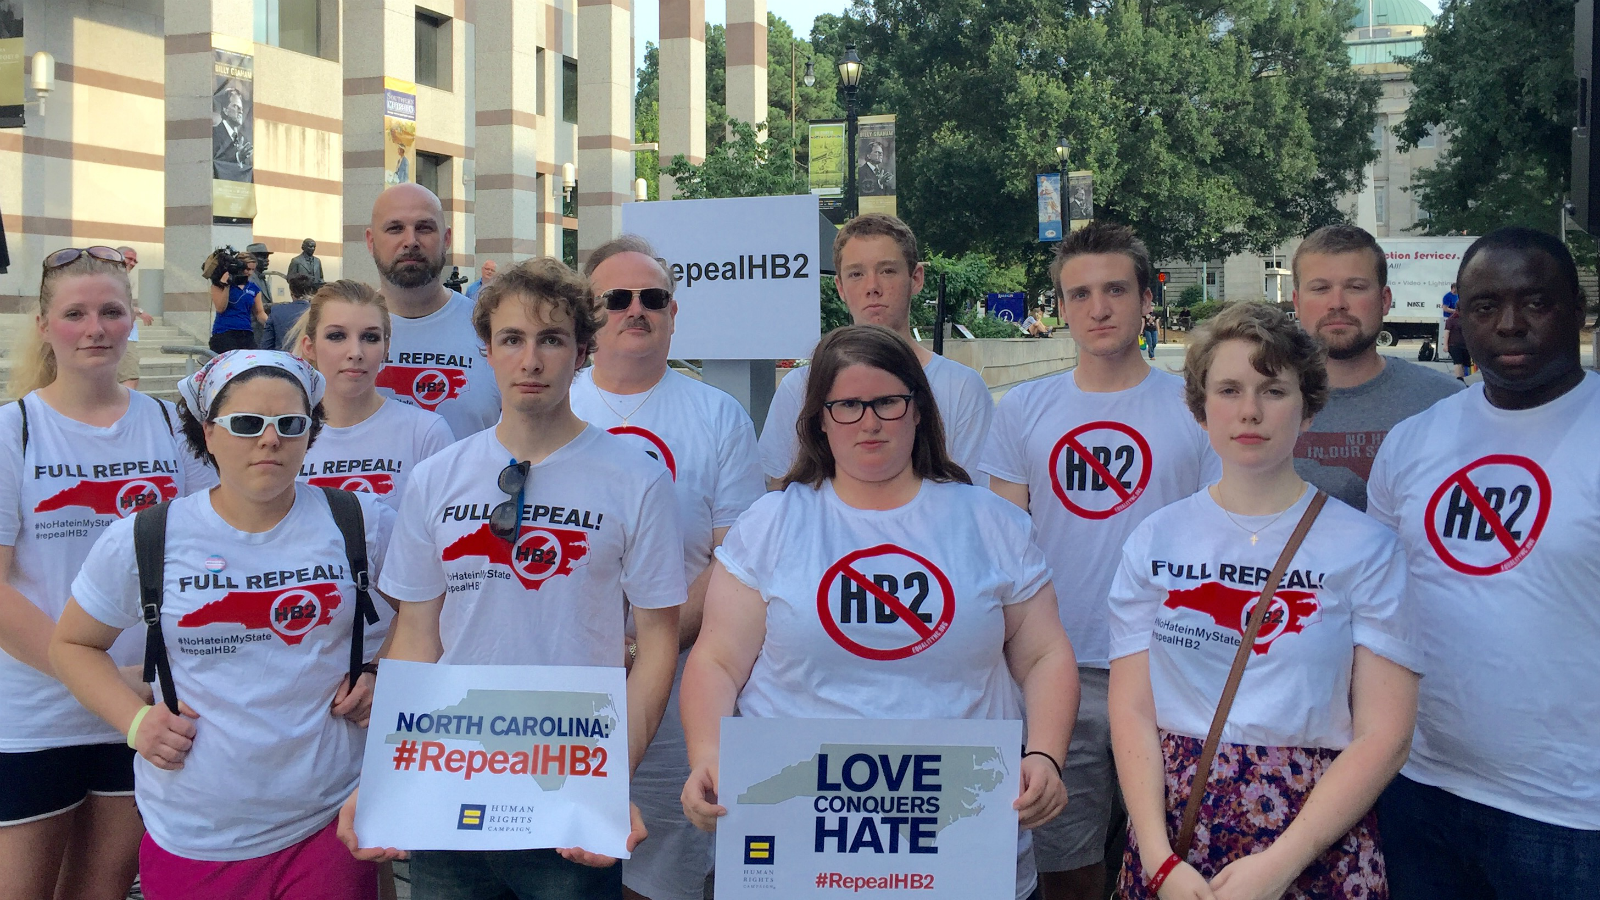 North Carolinians Rally Against Hate, Demand Repeal of HB2